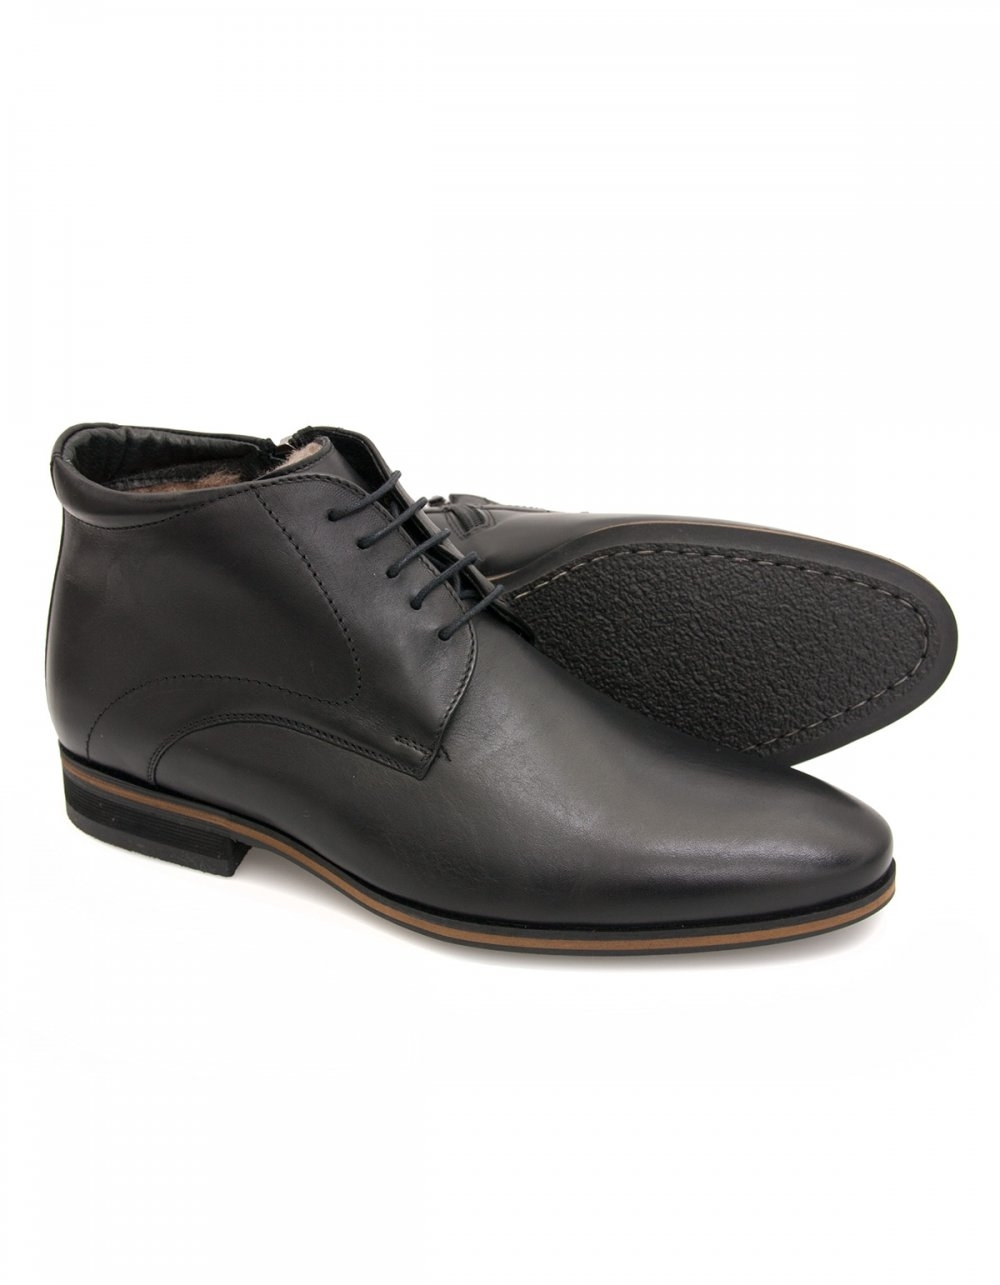 lacuzzo black leather lace boots with side zip and genuine